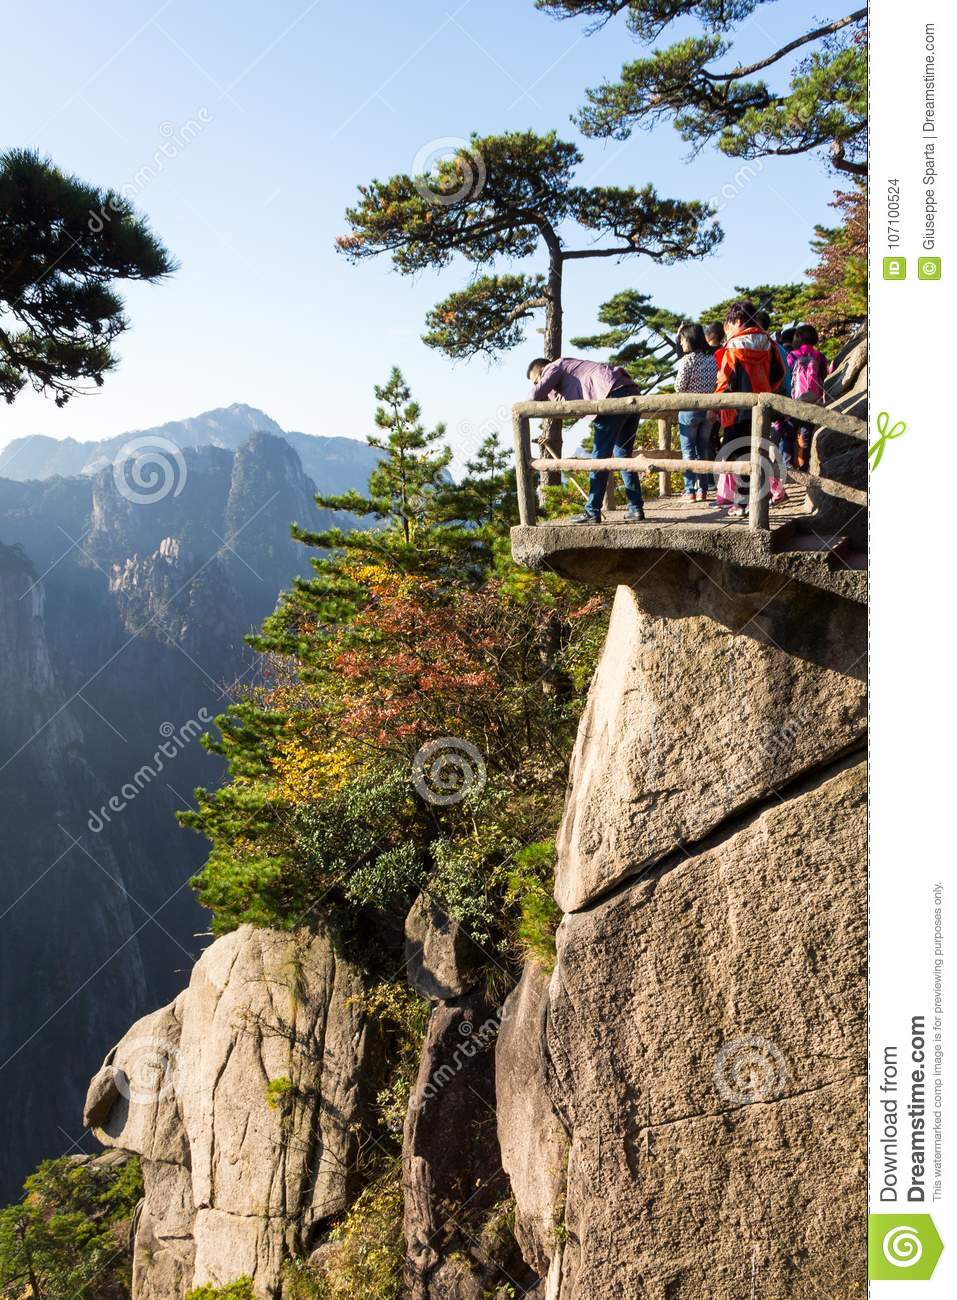 Octobre 2014 - Huangshan, Chine - touristes dans Grand Canyon de la mer occidentale sur le Mt Huangshan